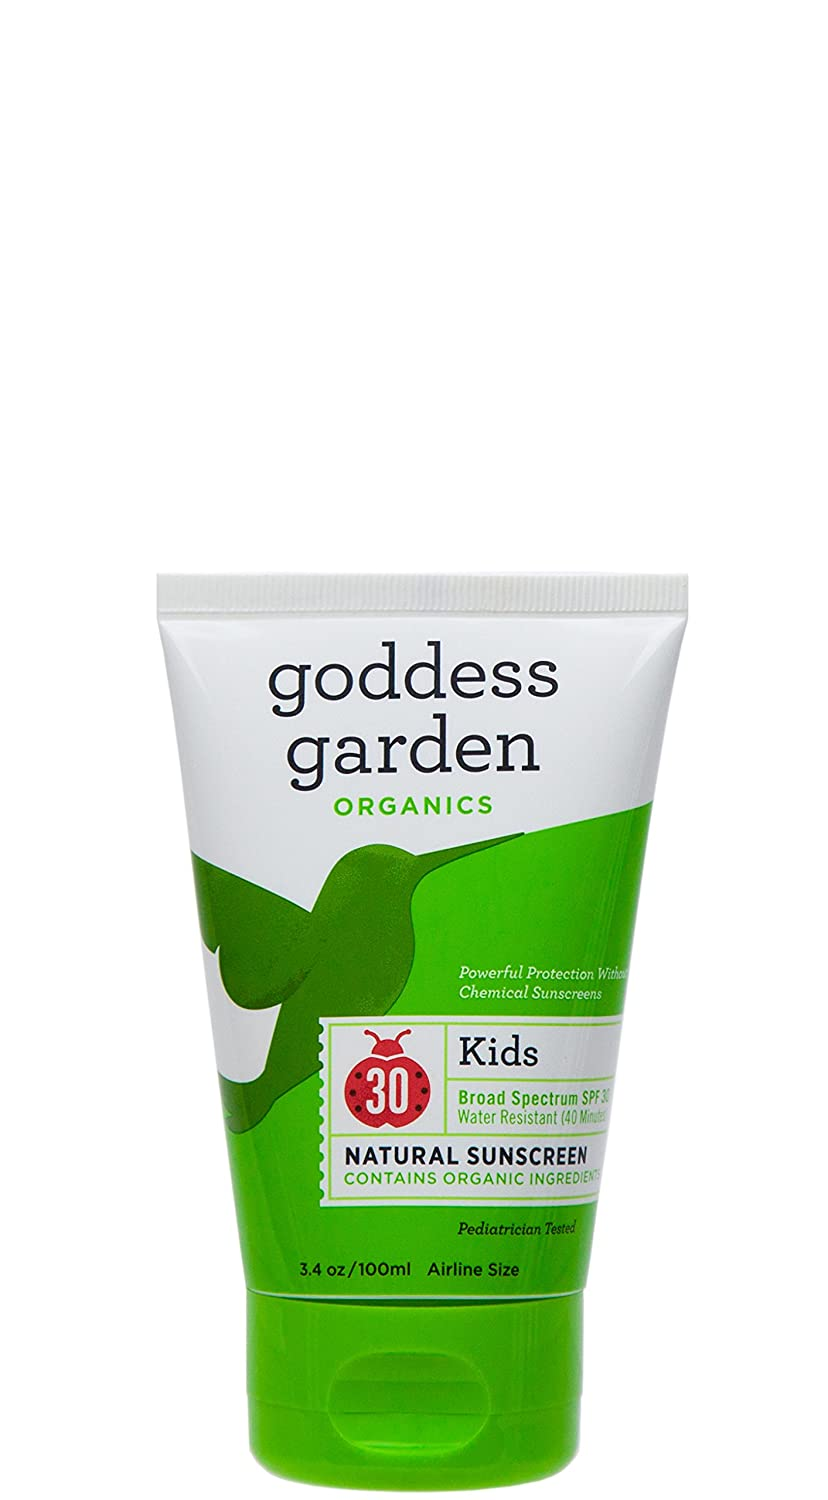 Goddess Garden Organics SPF 30 Kids Natural Mineral Sunscreen Lotion for Sensitive Skin Reef Safe, Water Resistant, Vegan, Leaping Bunny Certified Cruelty-Free, Non-Nano